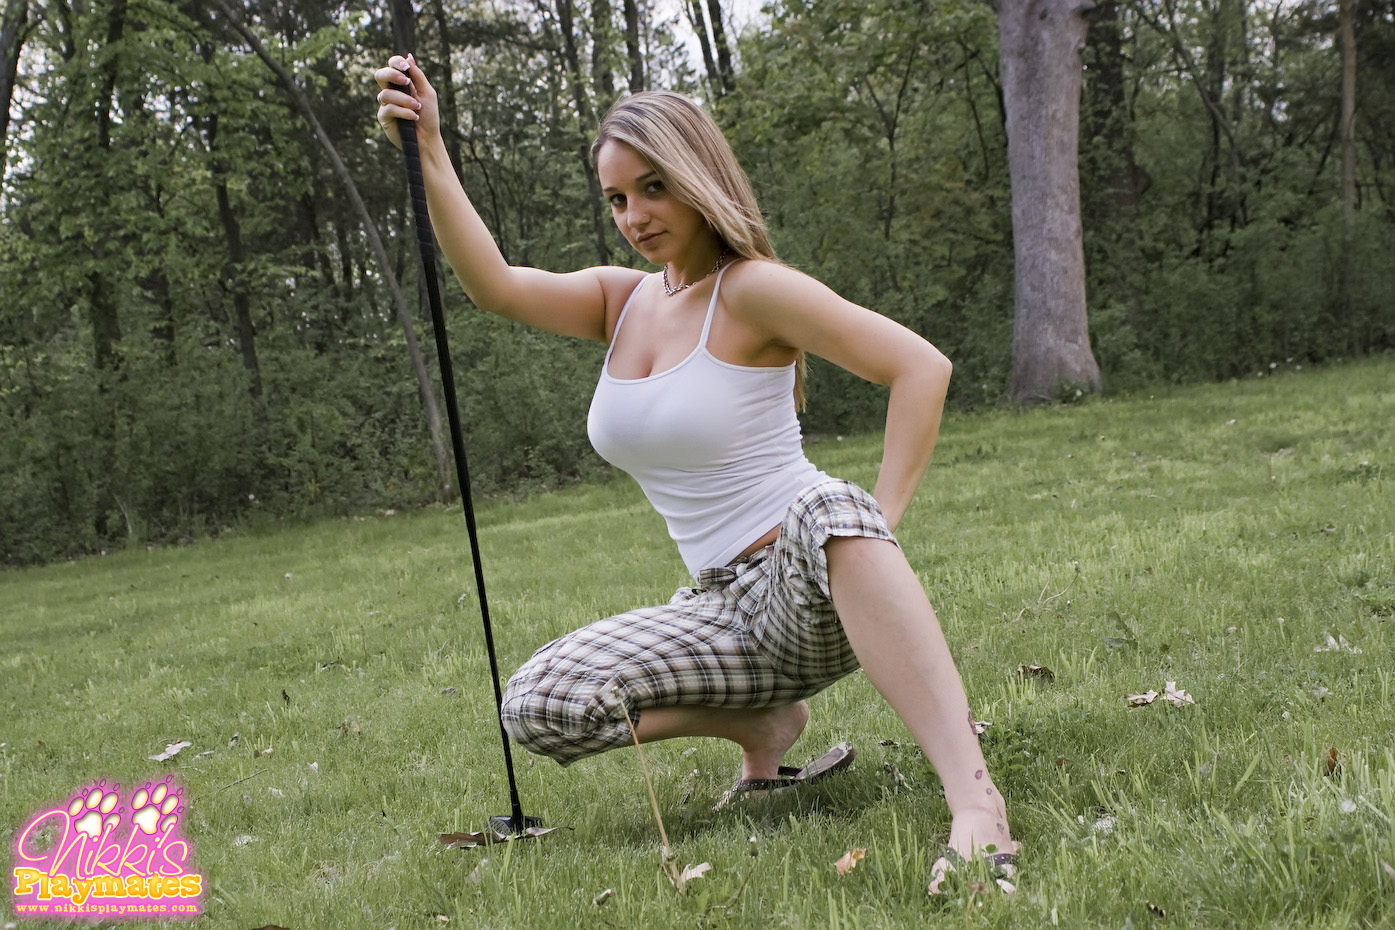 Porn gurls playing golf